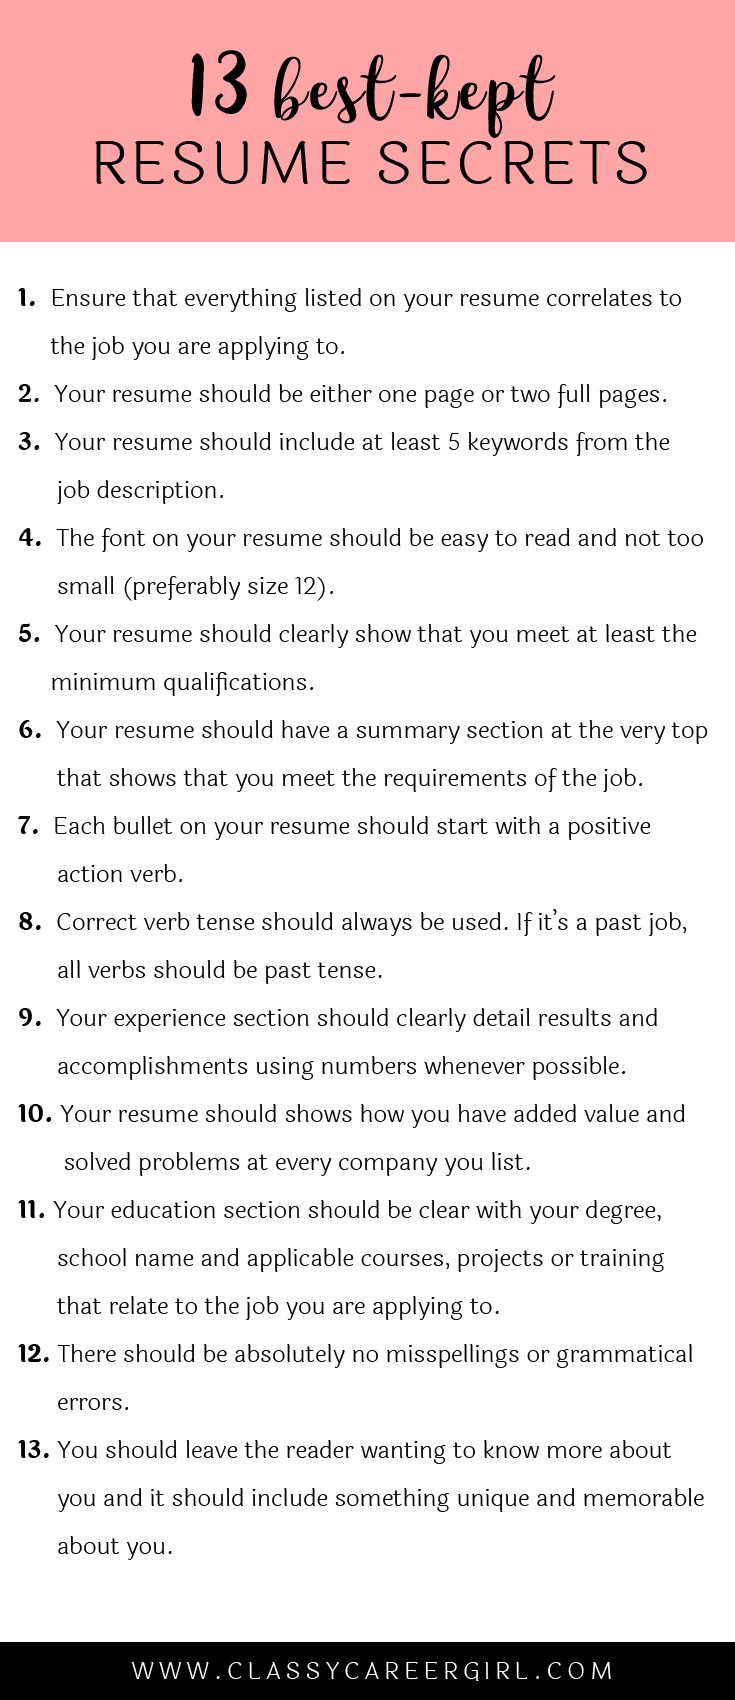 Opposenewapstandardsus  Personable  Ideas About Resume On Pinterest  Cv Format Resume Cv And  With Luxury Some Hiring Managers Will Toss Your Resume Out If You Dont Know These  With Awesome Critical Care Nurse Resume Also Team Lead Resume In Addition Resume Template College Student And Pediatric Nurse Resume As Well As Resume Profiles Additionally Veterinary Assistant Resume From Pinterestcom With Opposenewapstandardsus  Luxury  Ideas About Resume On Pinterest  Cv Format Resume Cv And  With Awesome Some Hiring Managers Will Toss Your Resume Out If You Dont Know These  And Personable Critical Care Nurse Resume Also Team Lead Resume In Addition Resume Template College Student From Pinterestcom